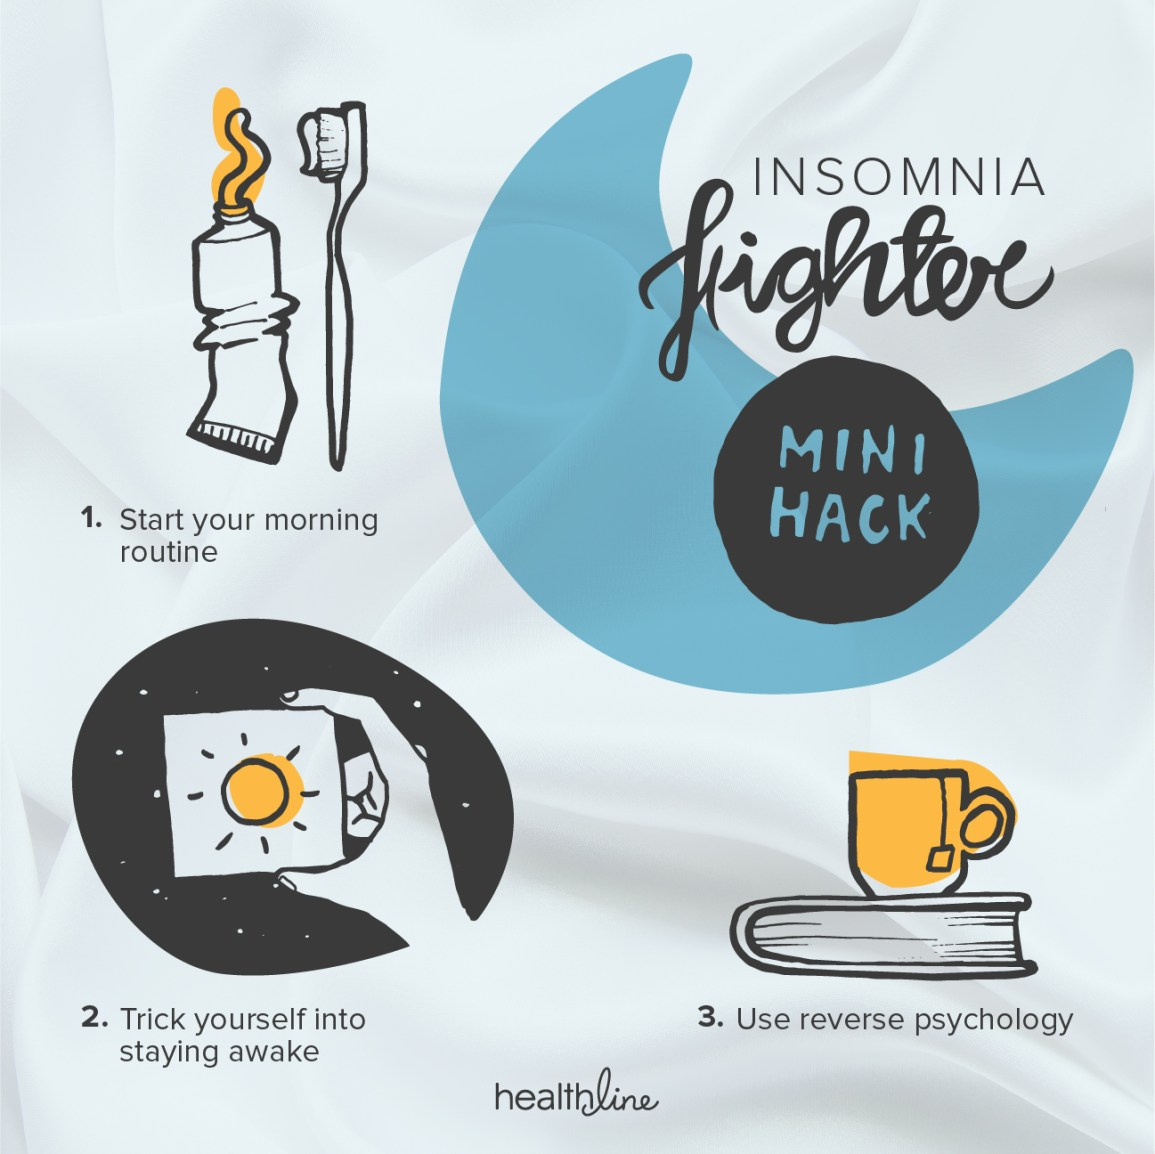 must try insomnia hack